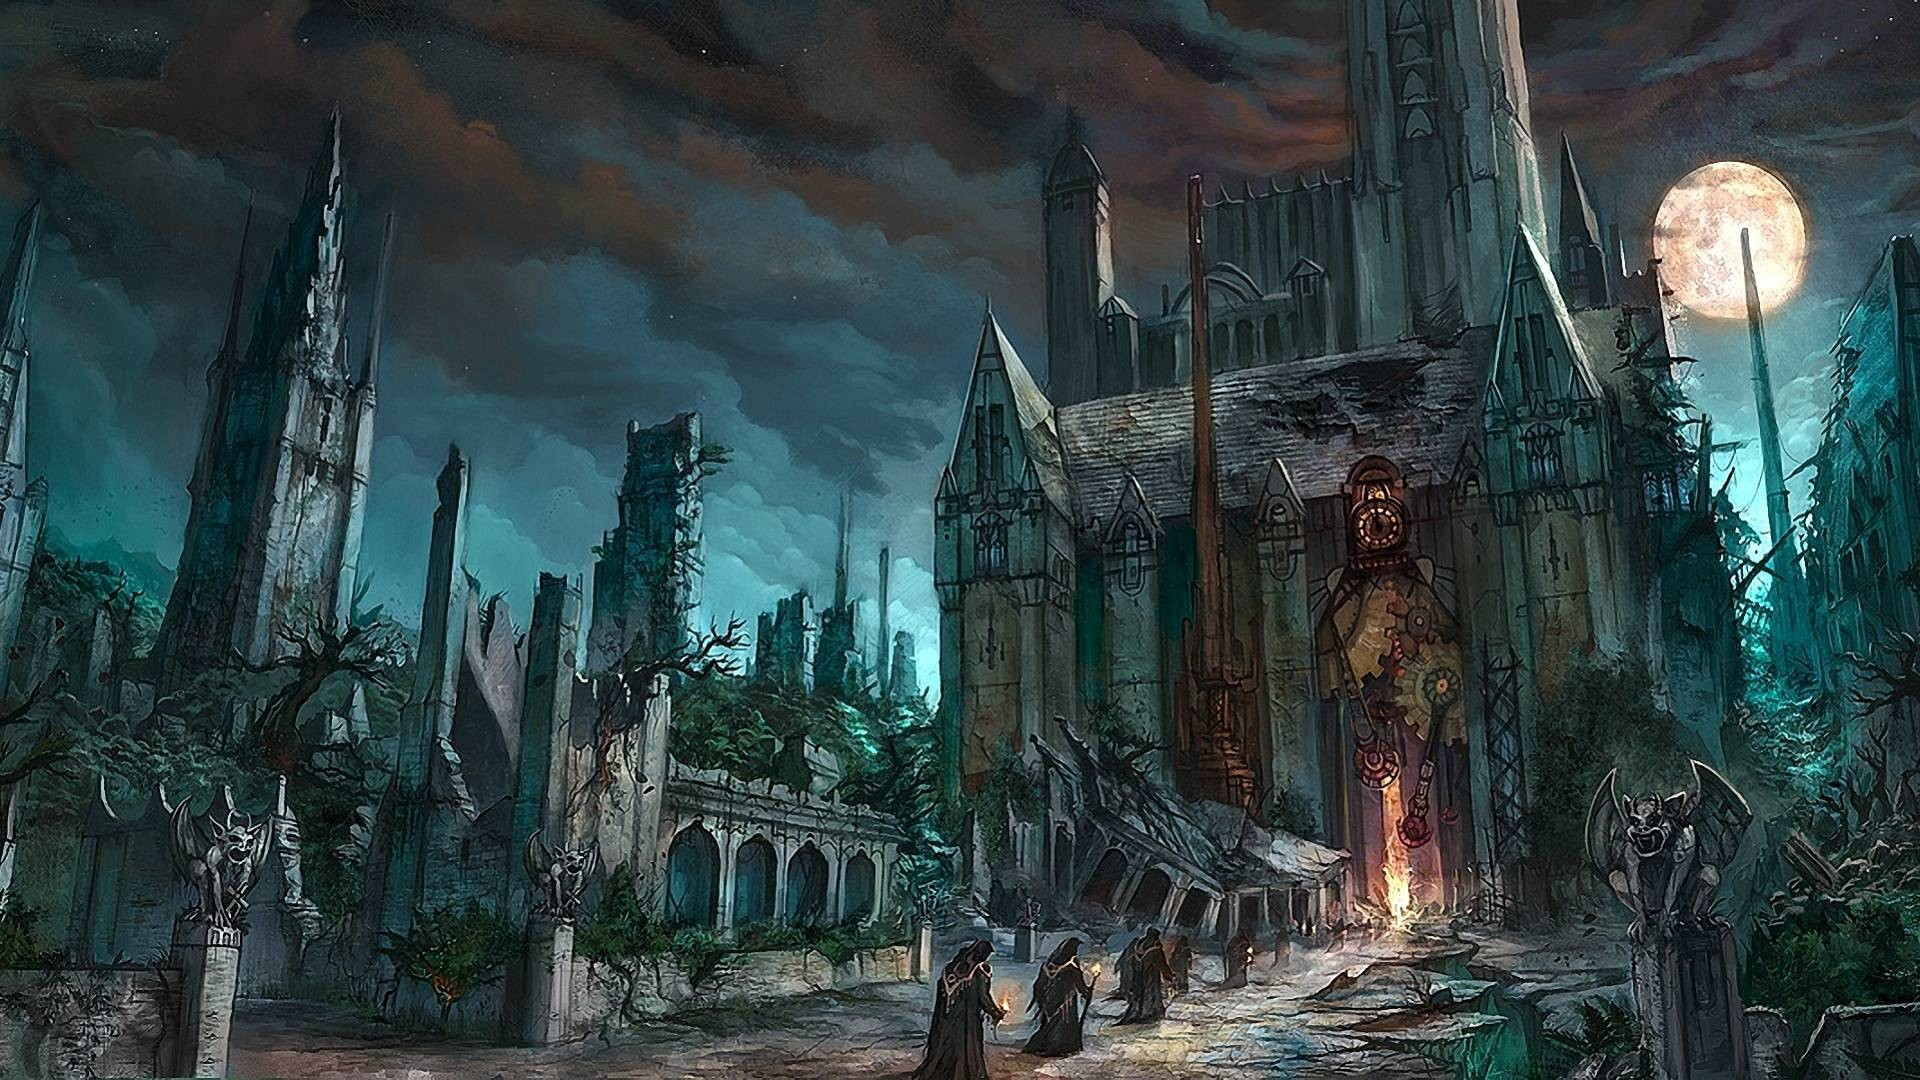 1920x1080 Dark Fantasy Horror Gothic Art Monk Cathedral Church Wallpaper .